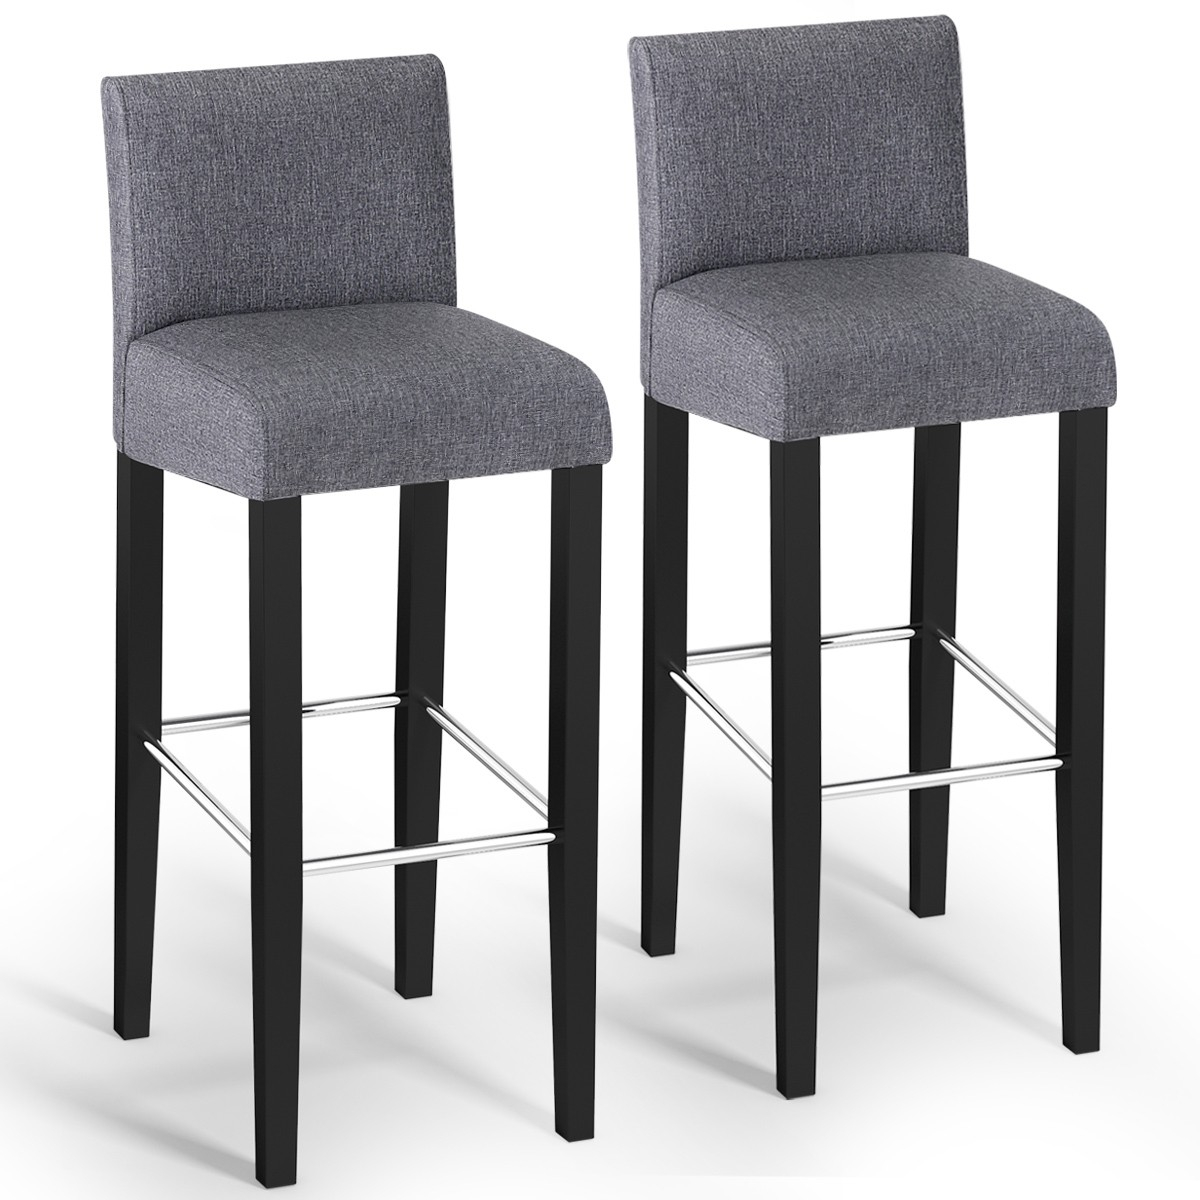 Groovy Details About 2 Pcs Modern Gray Fabric Bar Stools Pub Chairs With Solid Wooden Legs Ibusinesslaw Wood Chair Design Ideas Ibusinesslaworg